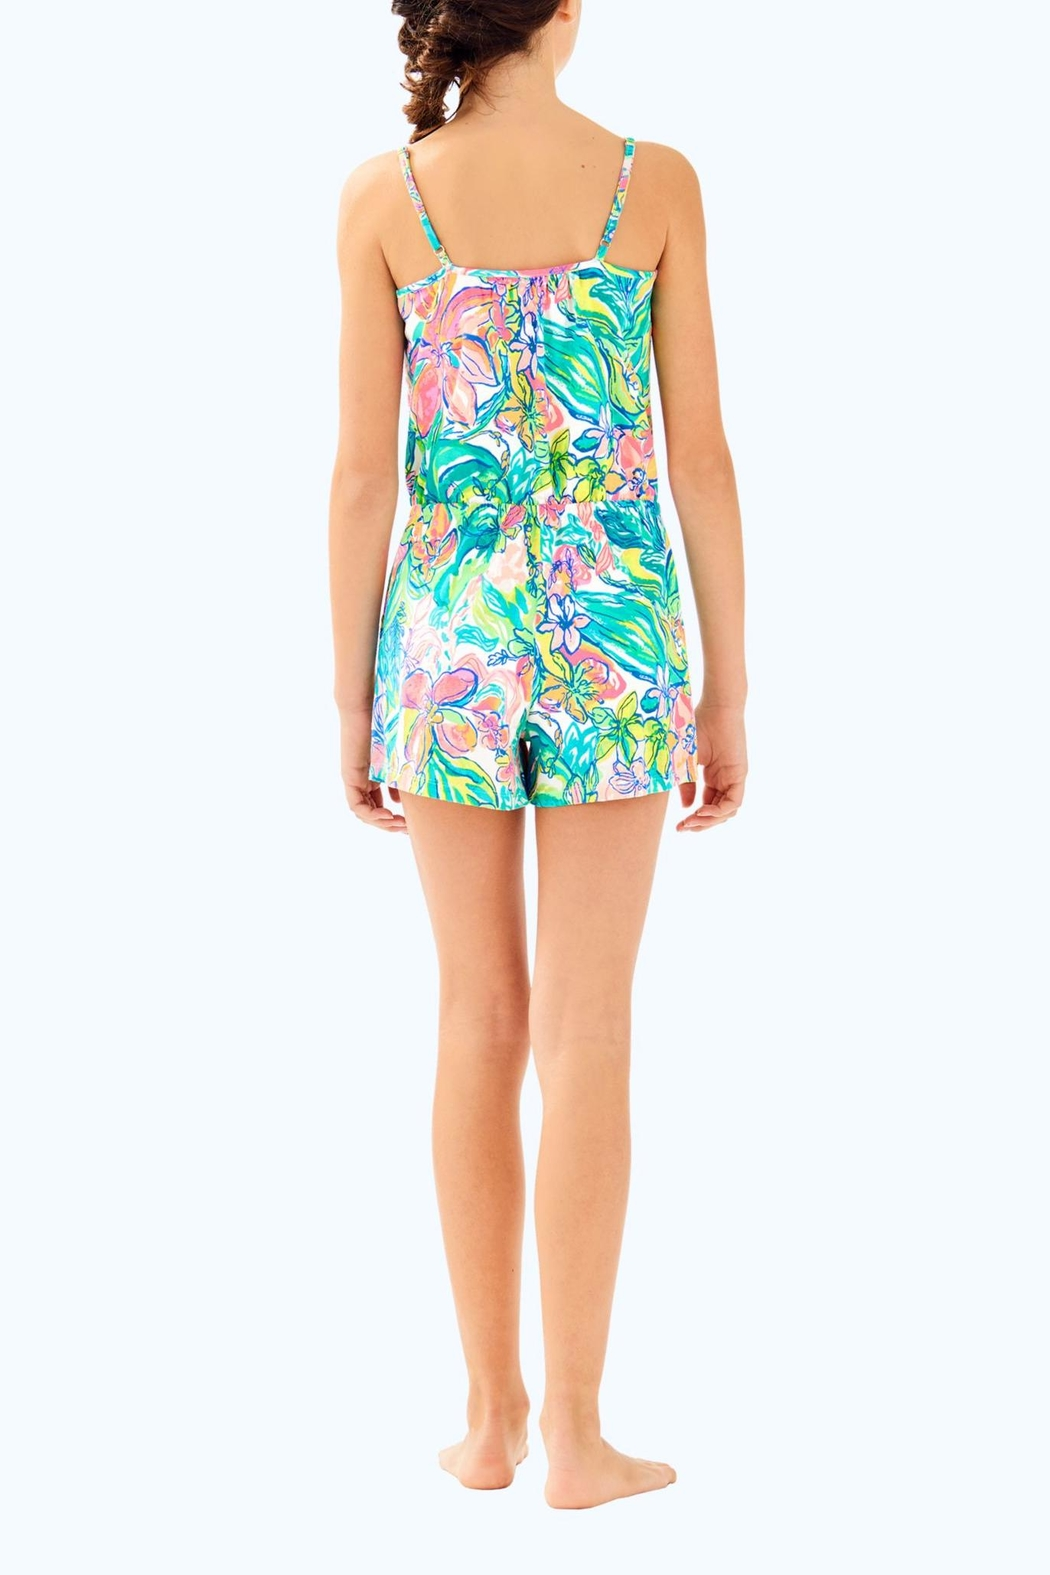 Lilly Pulitzer Girls Aleene Romper - Back Cropped Image